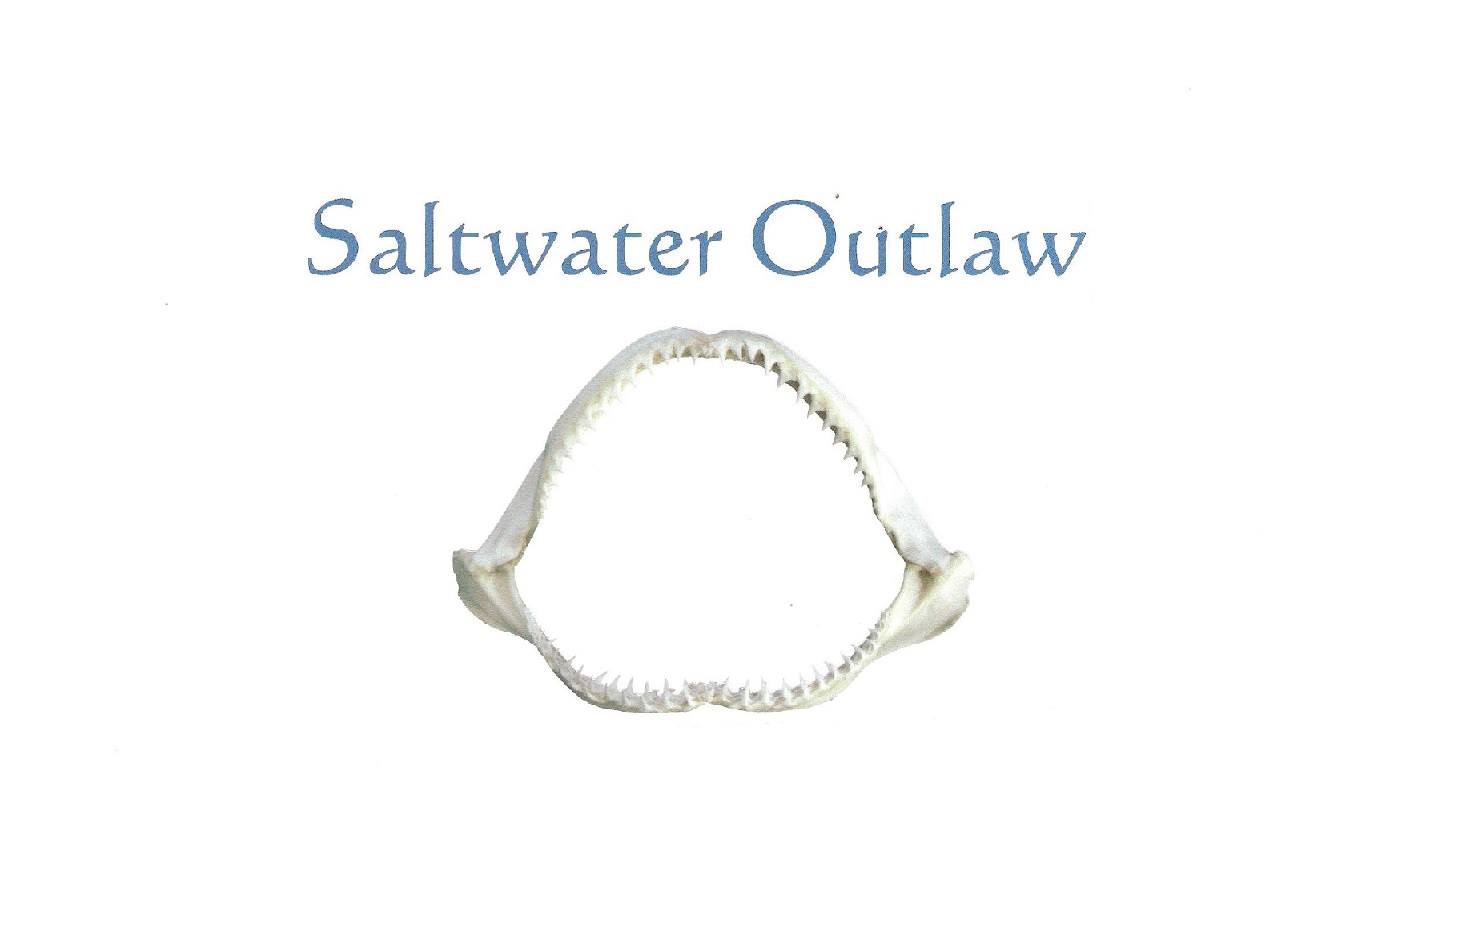 Saltwater Outlaw